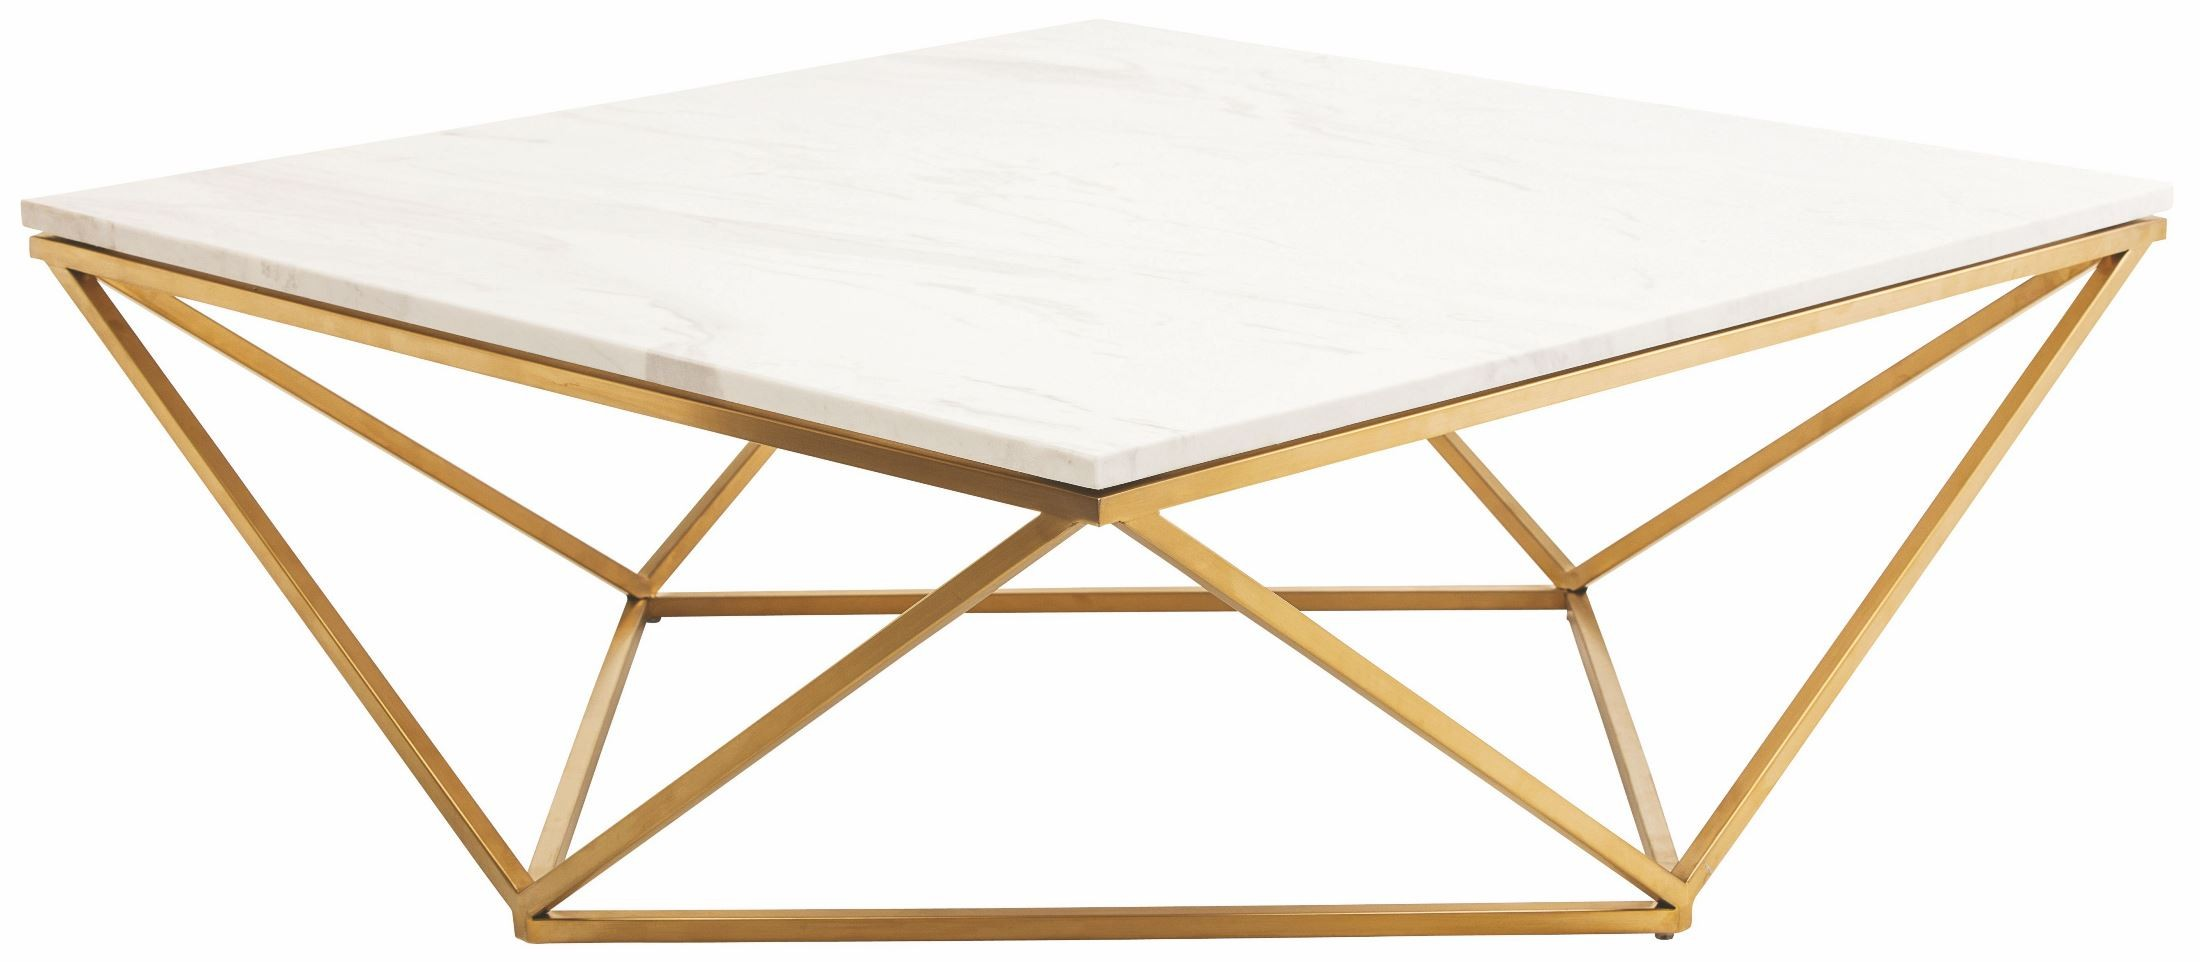 Jasmine White Stone and Gold Metal Coffee Table from Nuevo